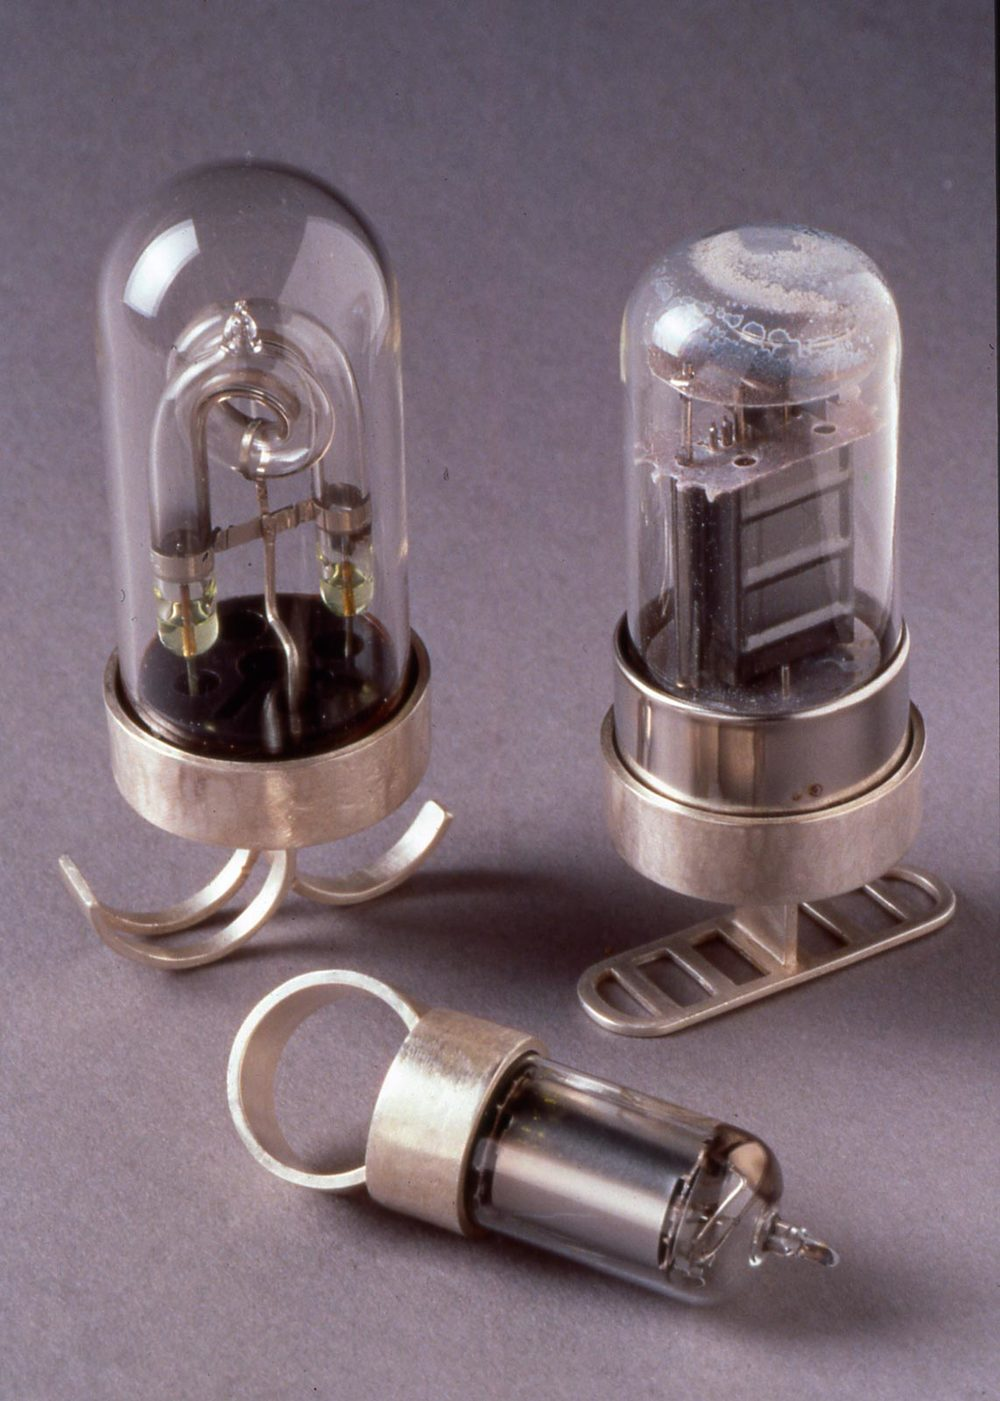 INTERMITTENT SERIES RINGS of vacuum tubes set in fabricated sterling silver, 9.3 x 3.4 centimeters, 2000. Photograph by Roger Schreiber.